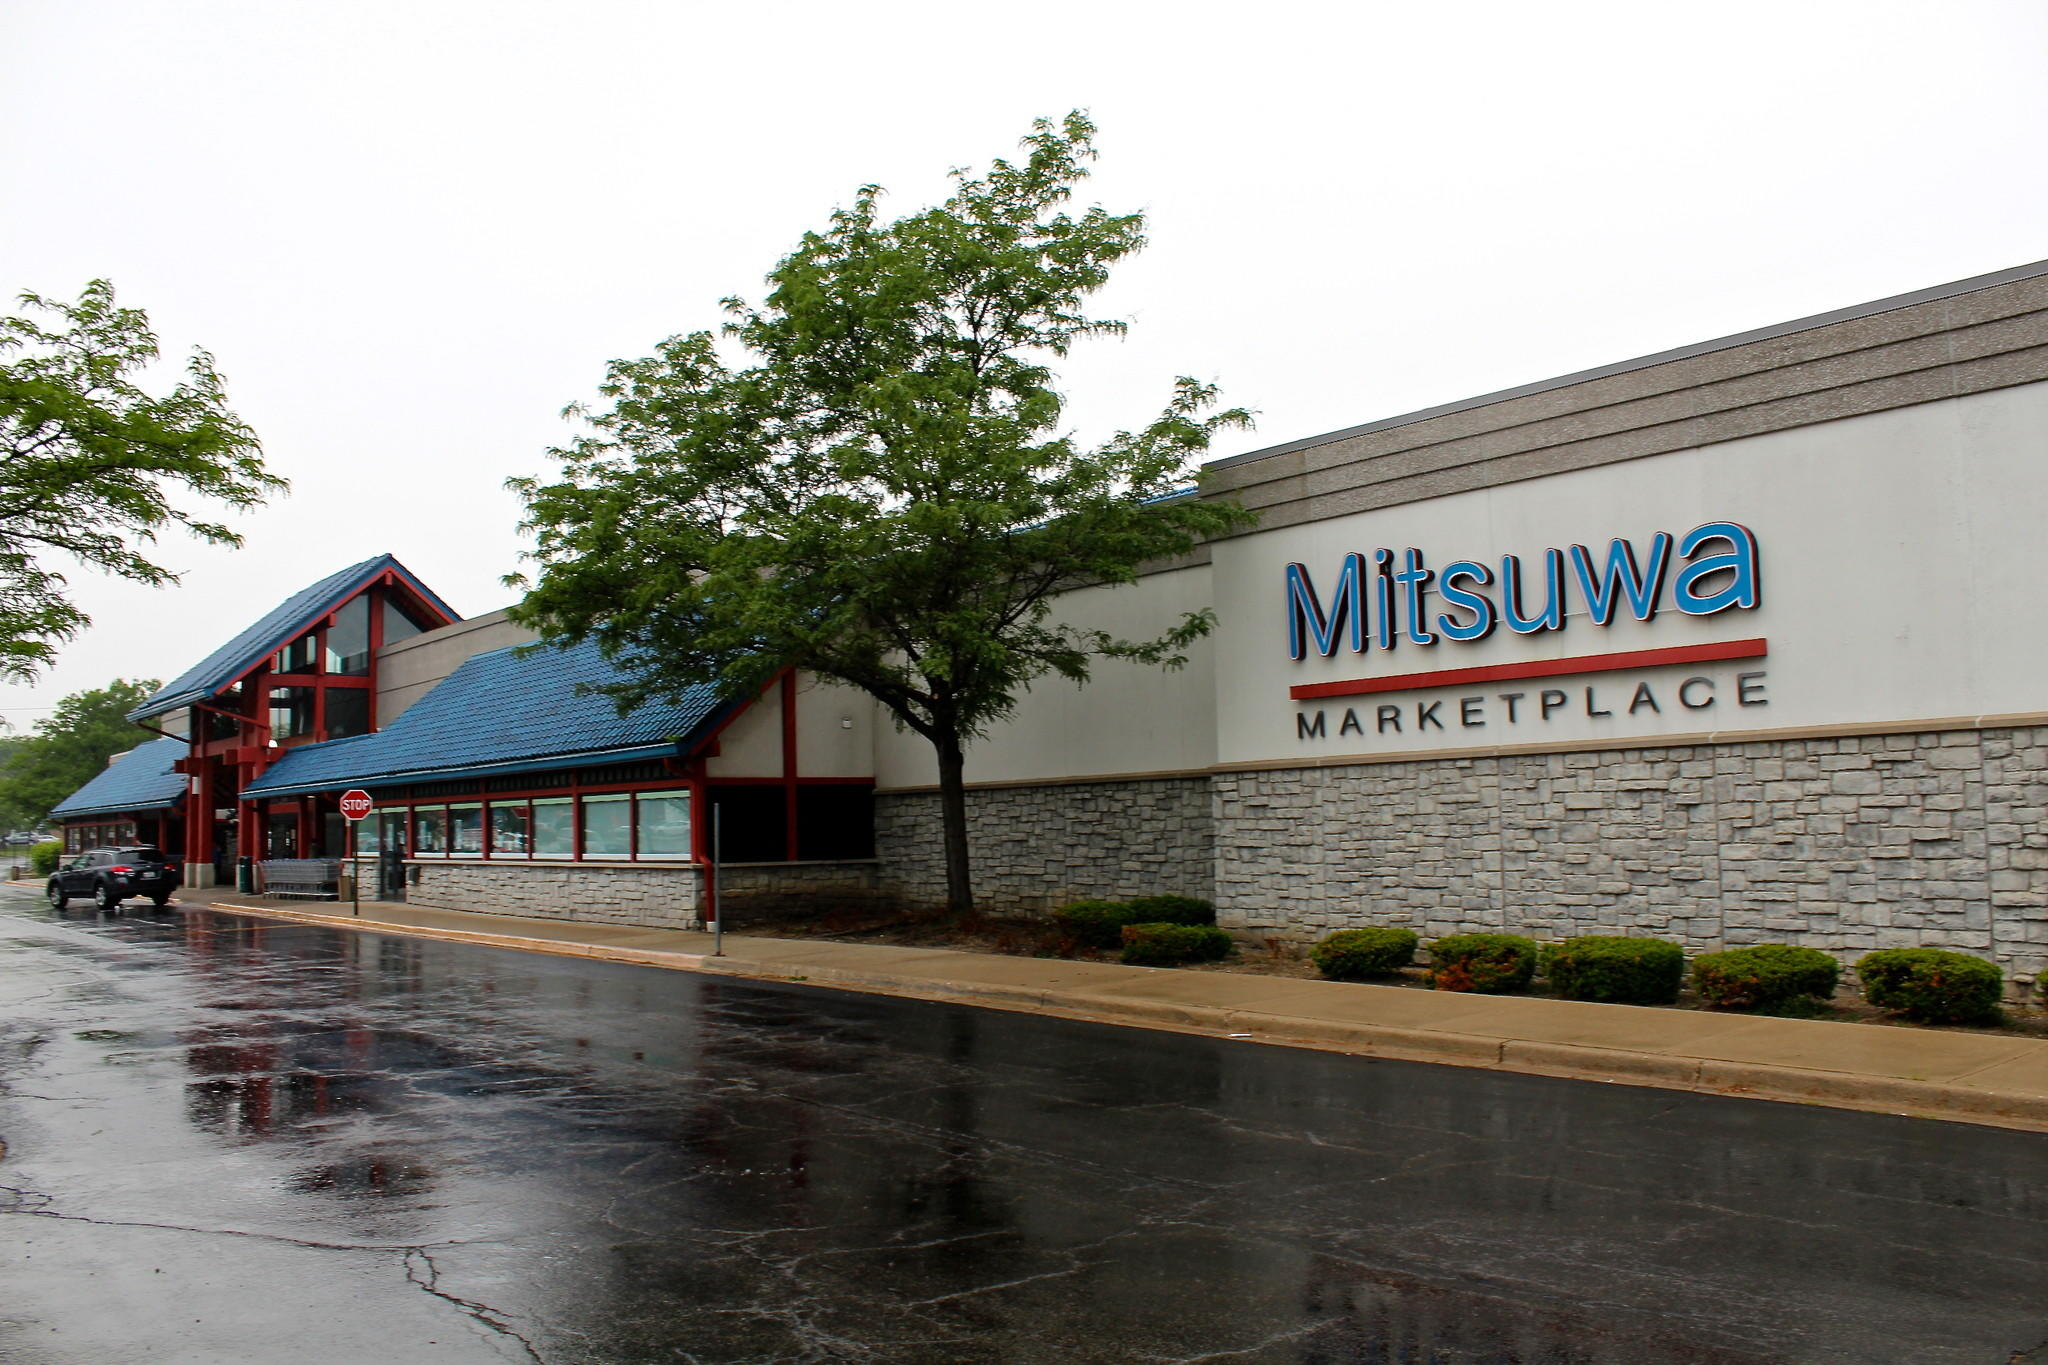 The Mitsuwa Marketplace in Arlington Heights is the largest Japanese market in the Midwest.